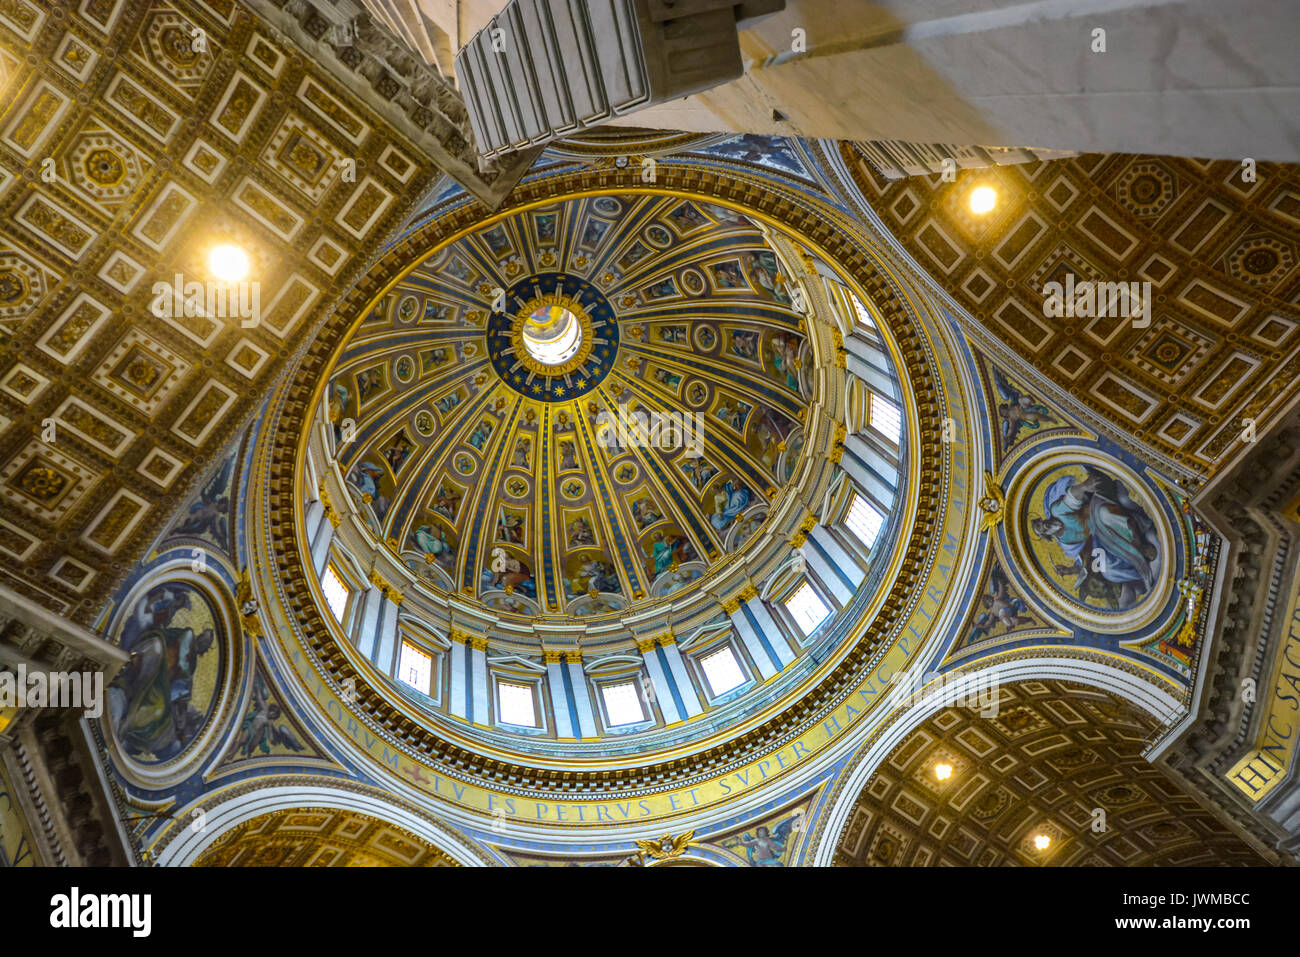 The Cupola of St Peters Basilica in Vatican City, Rome Italy from the interior showing brilliant gold and blue colors - Stock Image